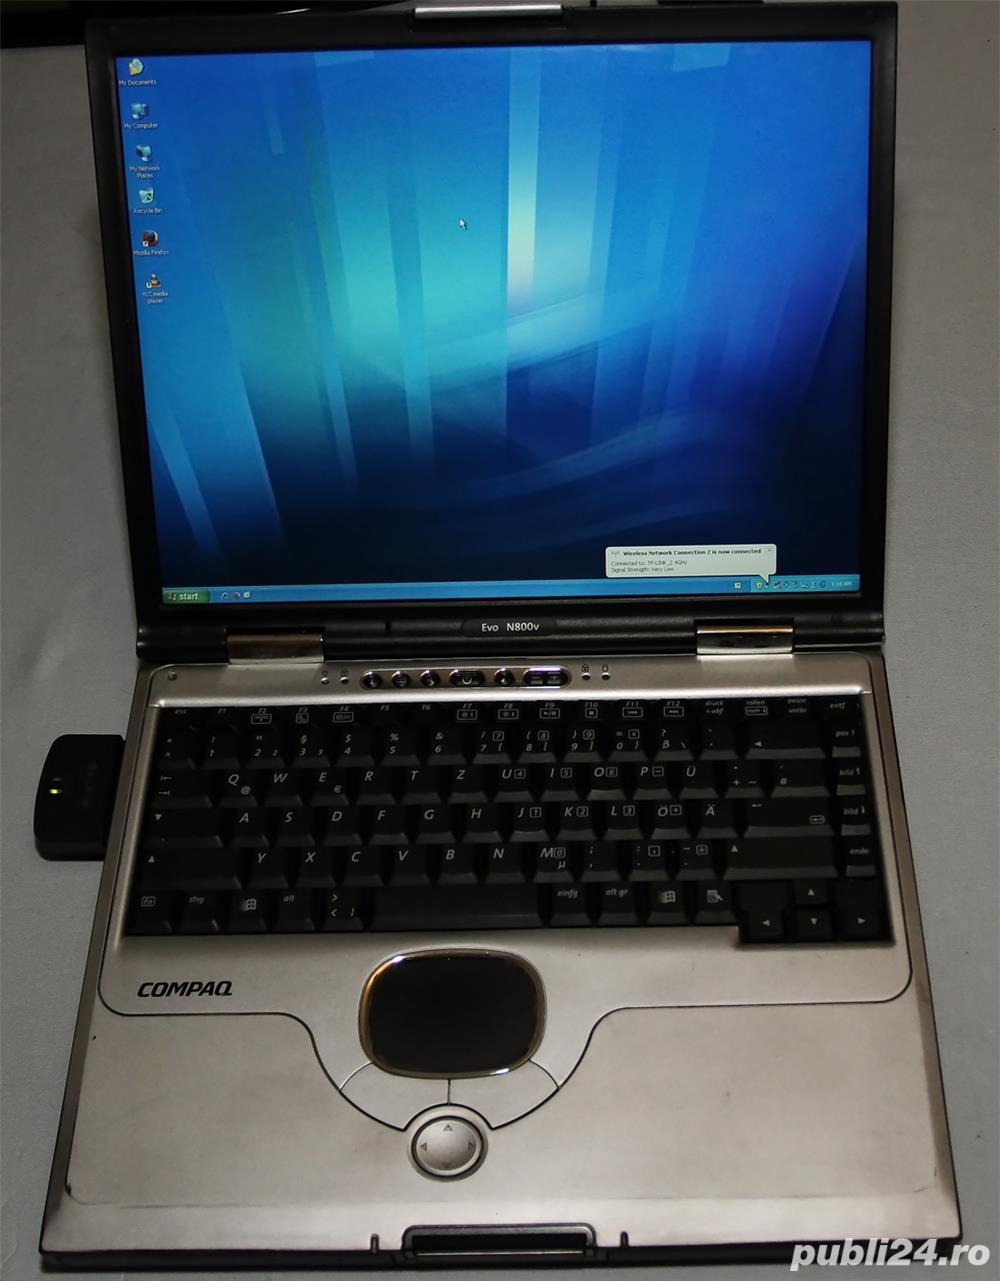 Leptop HP Compaq Intel, 15 inch